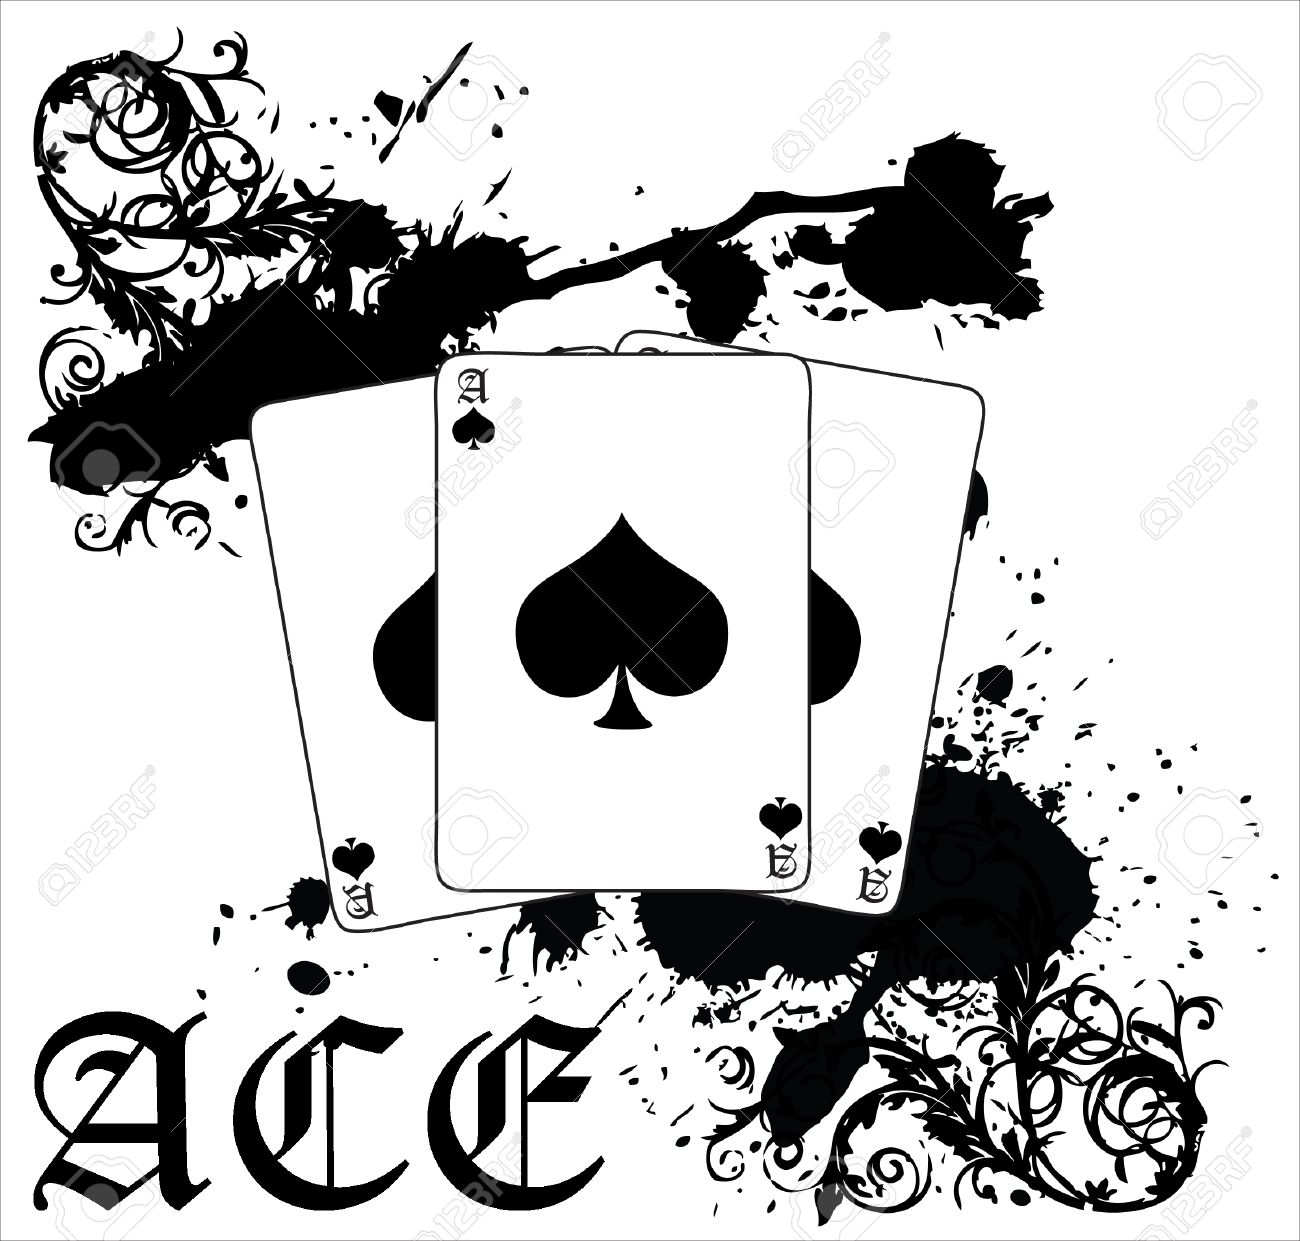 A black splotched vector illustration of three ace of spades a black splotched vector illustration of three ace of spades cards stock vector 4252435 biocorpaavc Choice Image